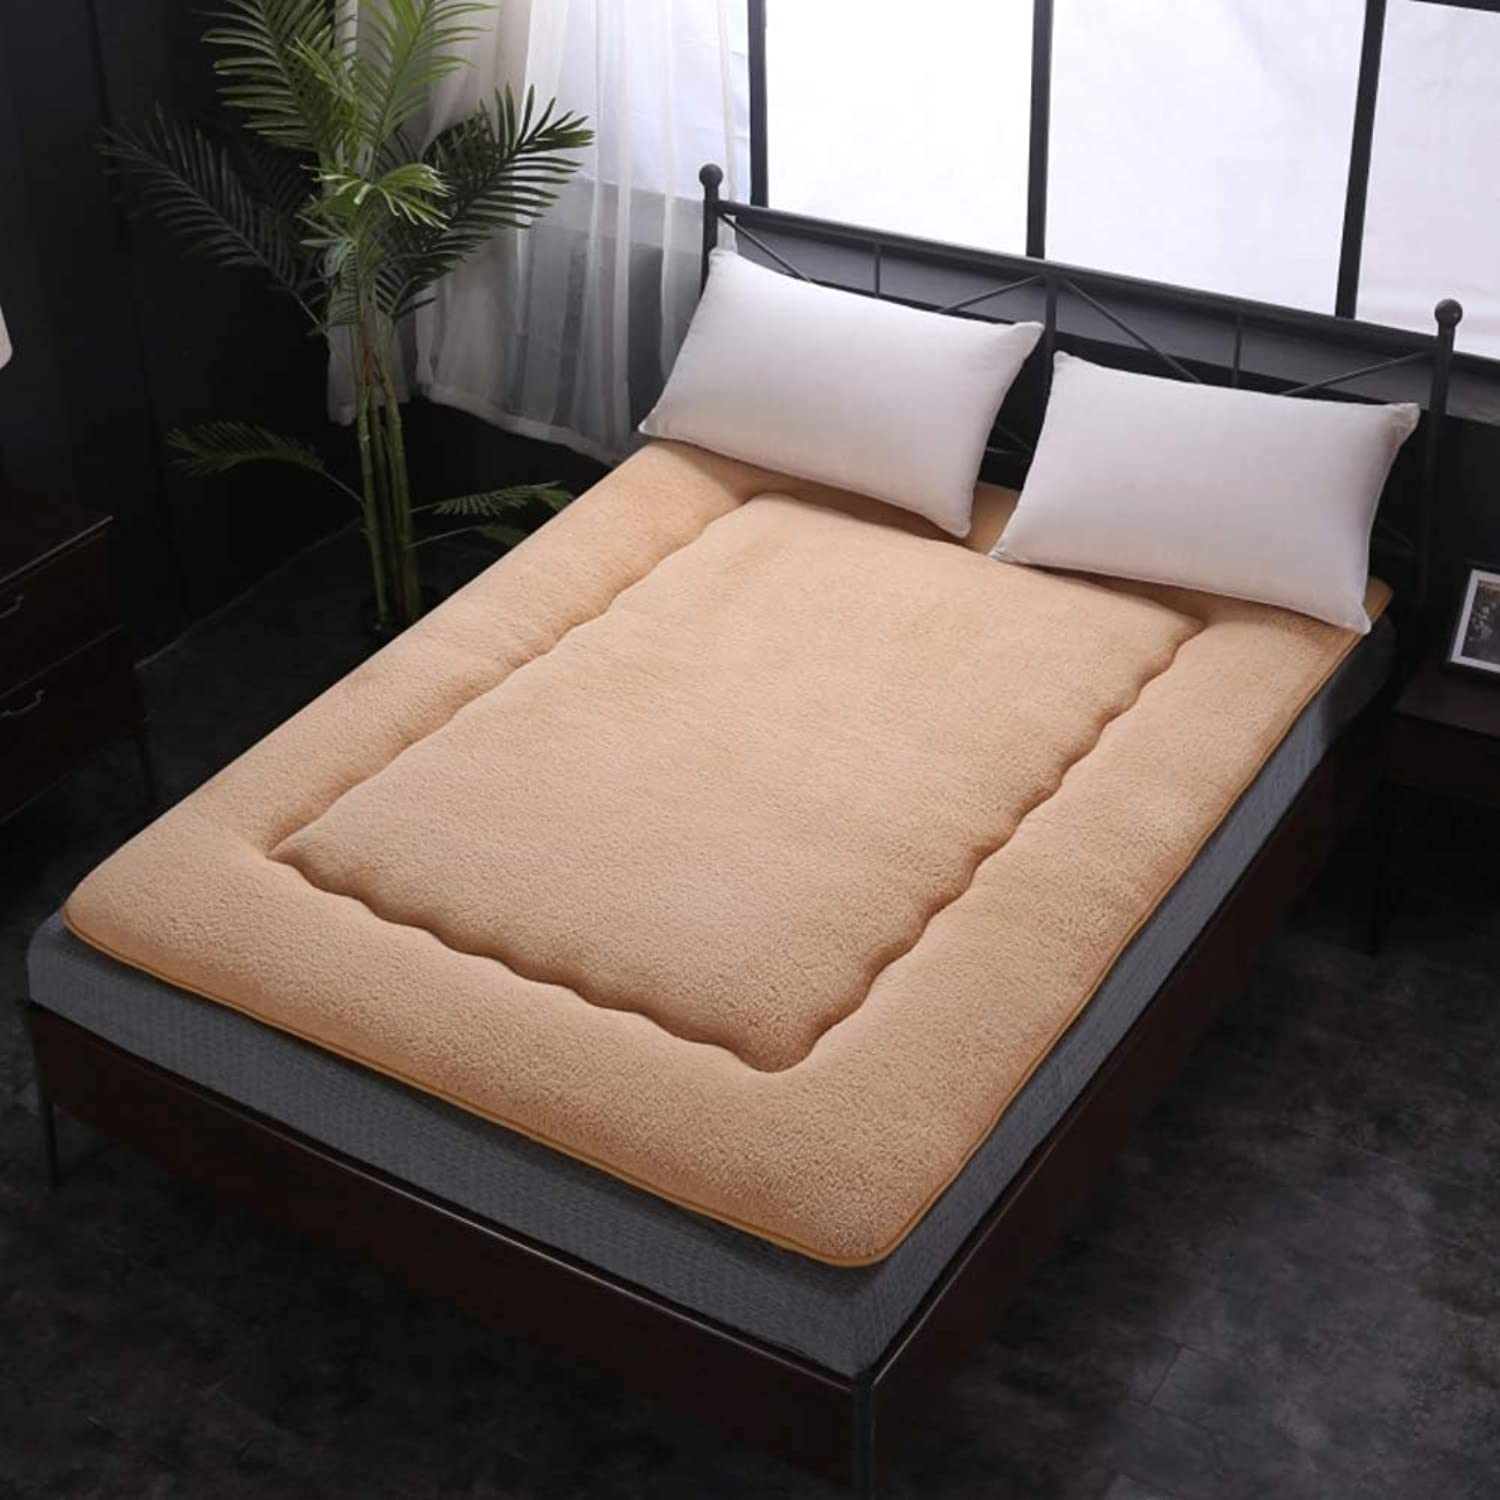 Japanese Tatami Mattress,Soft Mattress Pads,Thicken Sherpa Double Individual Dormitory Non-Slip Solid color Overfilled Mattress-Toppers-Light tan 150x200cm(59x79inch)